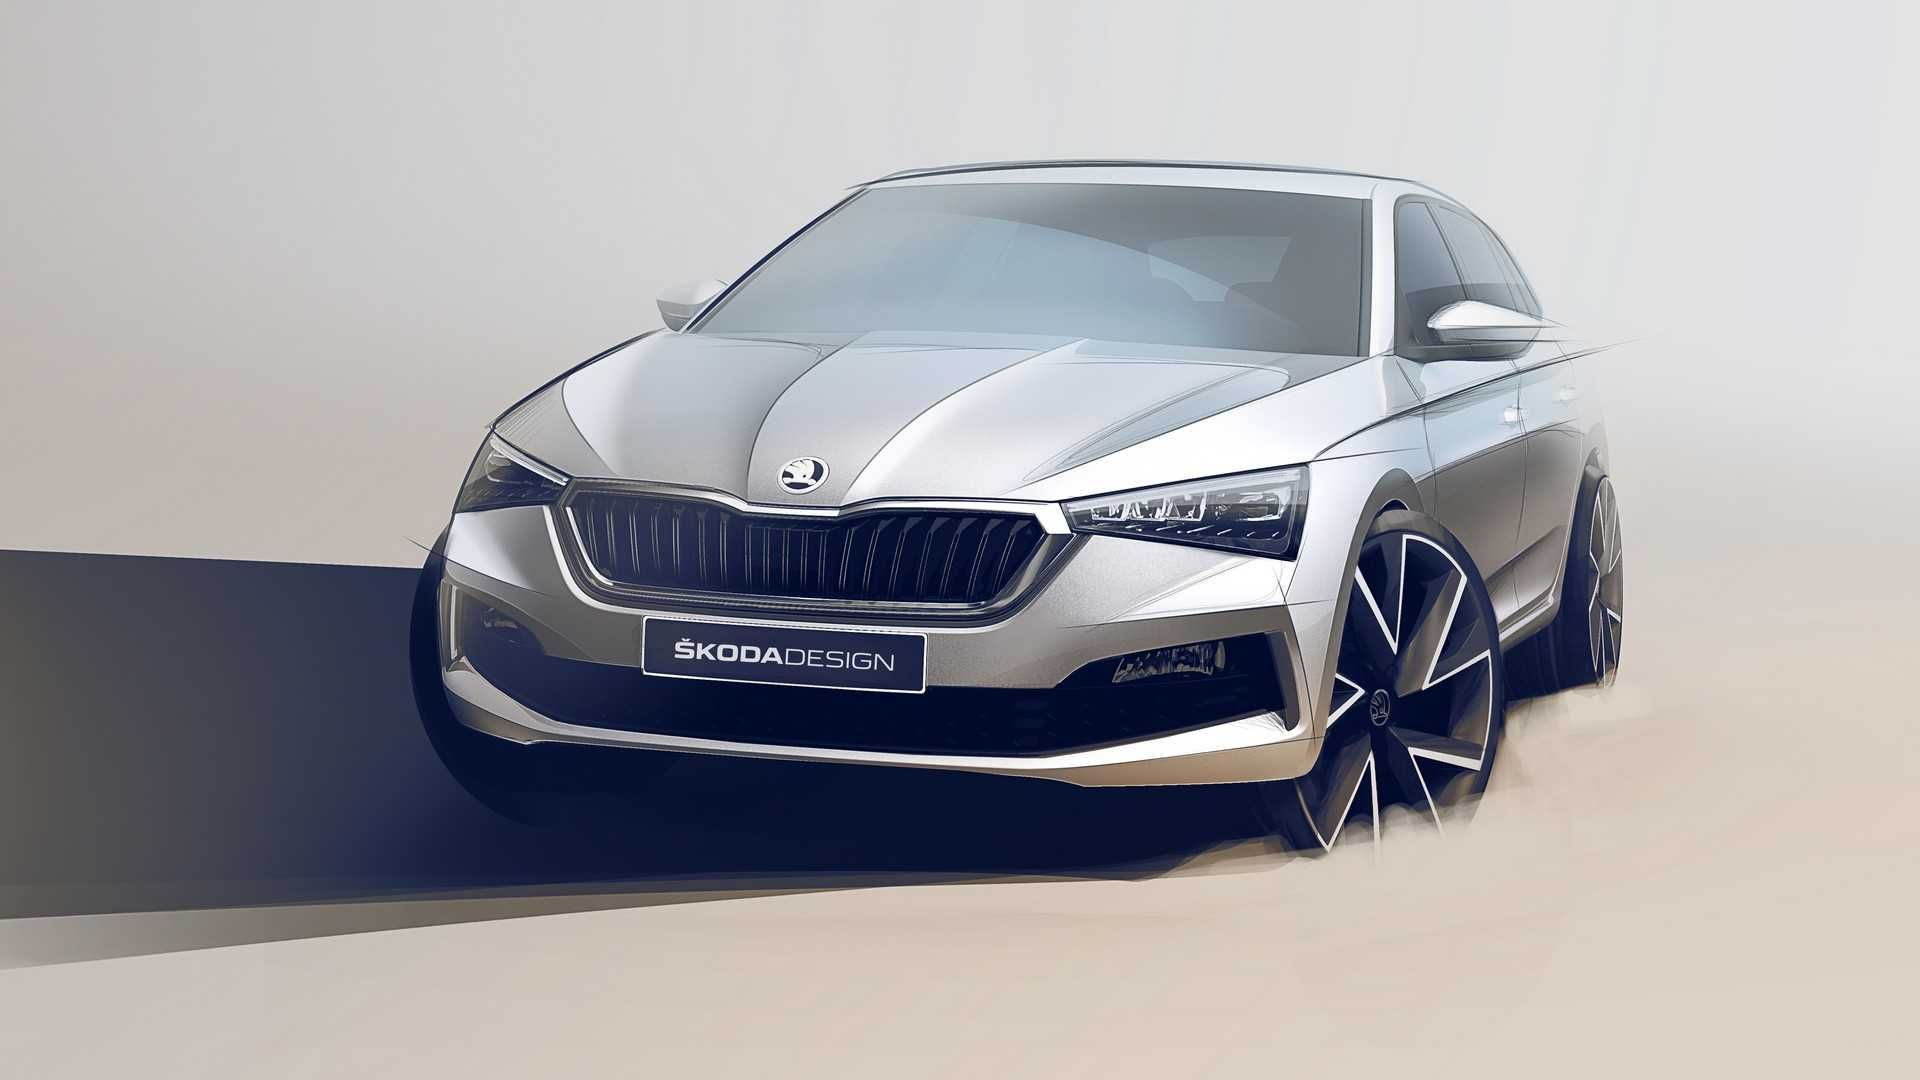 2019 Skoda Scala Revealed To Rival Vw Golf And Ford Focus Skoda Car Design Concept Cars